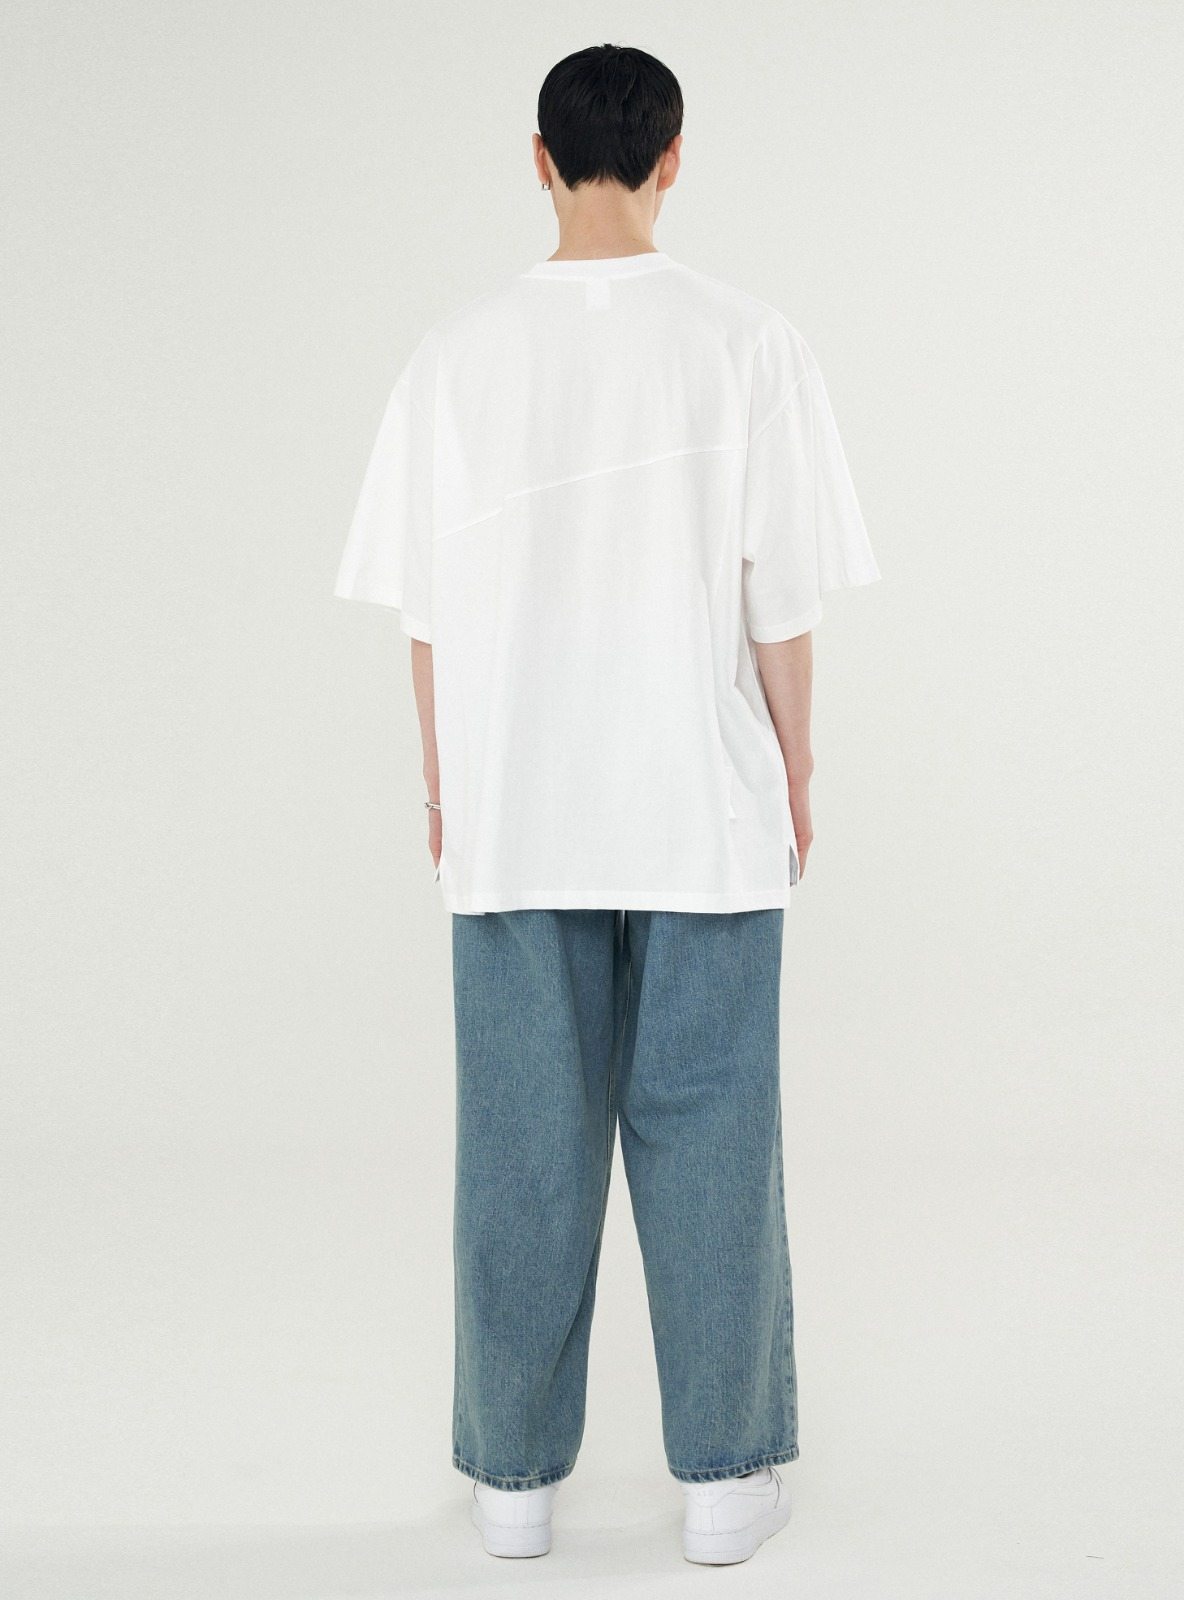 BACK SLIT AVANTGRADE TEE WHITE